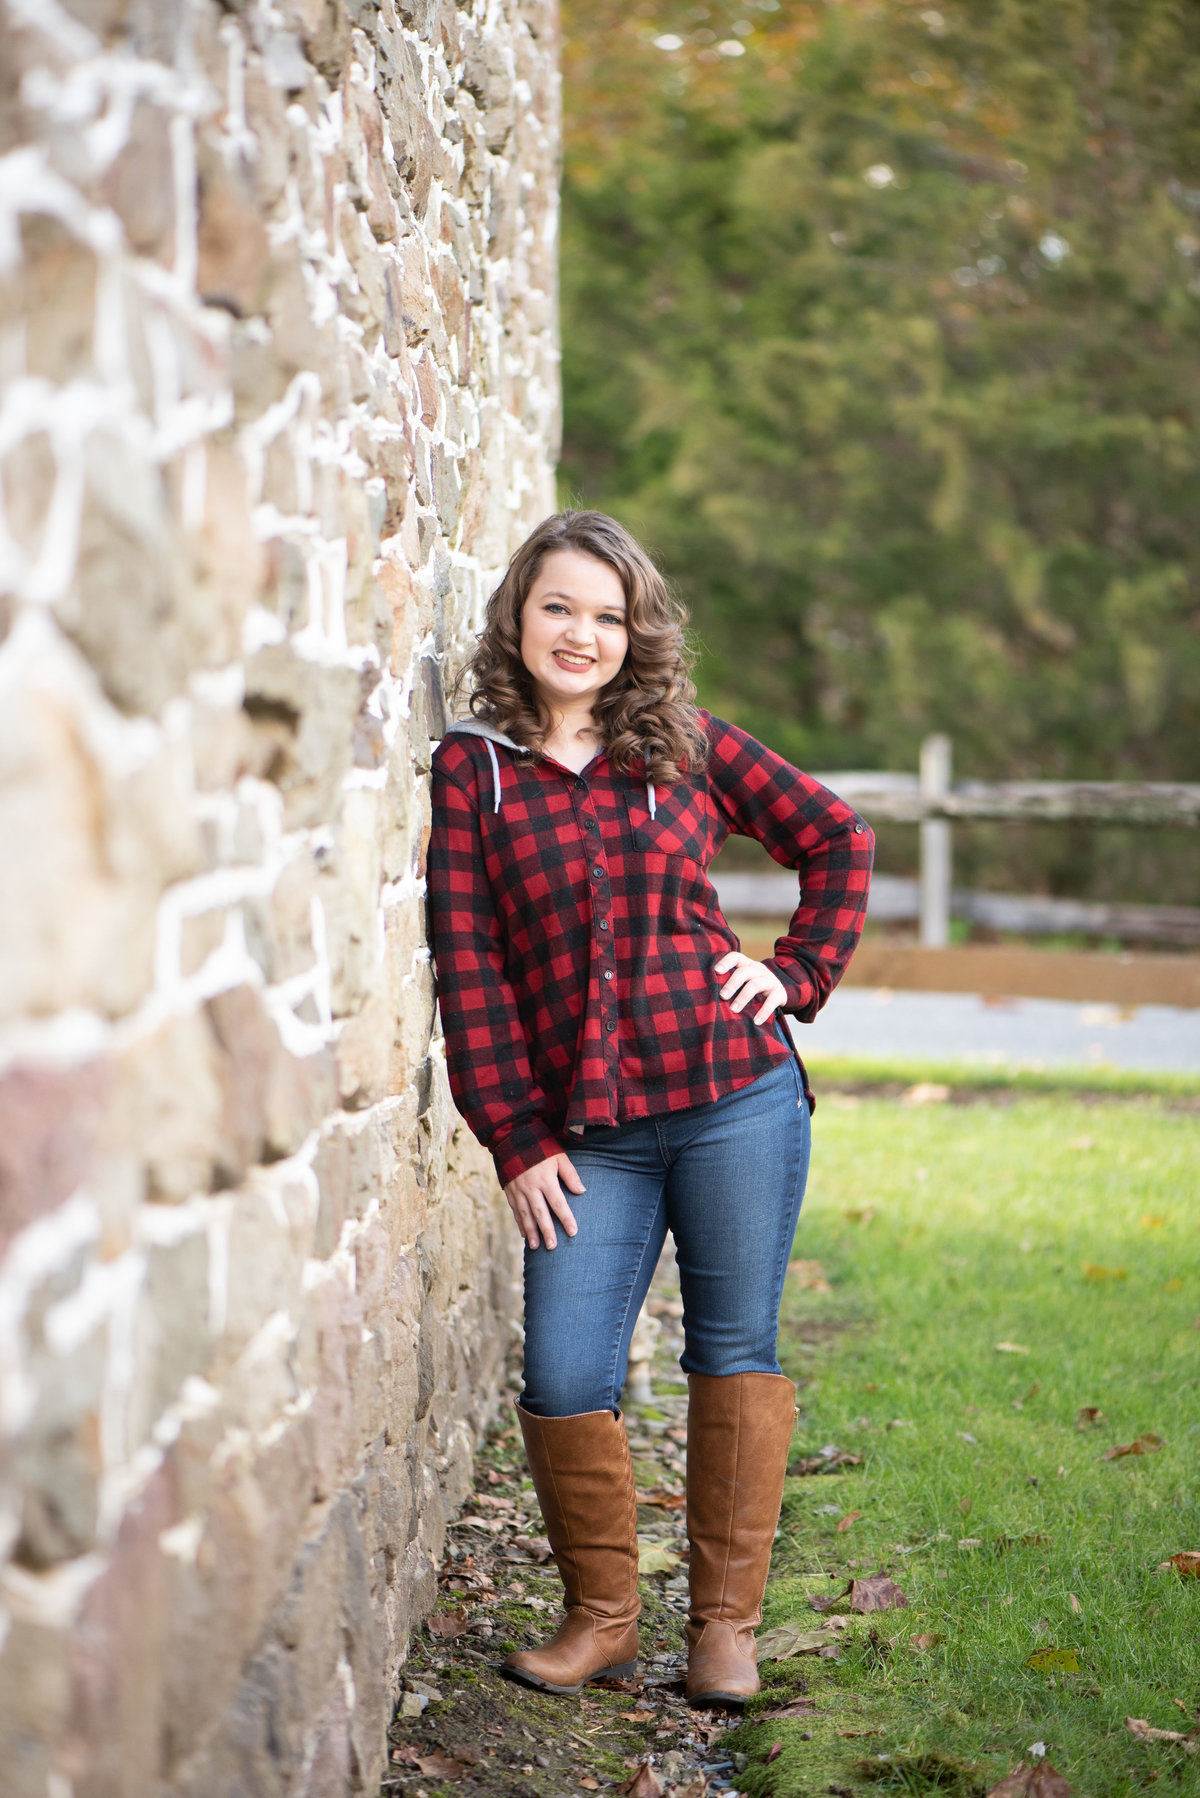 High School Senior Girl in buffalo plaid leaning against stone wall